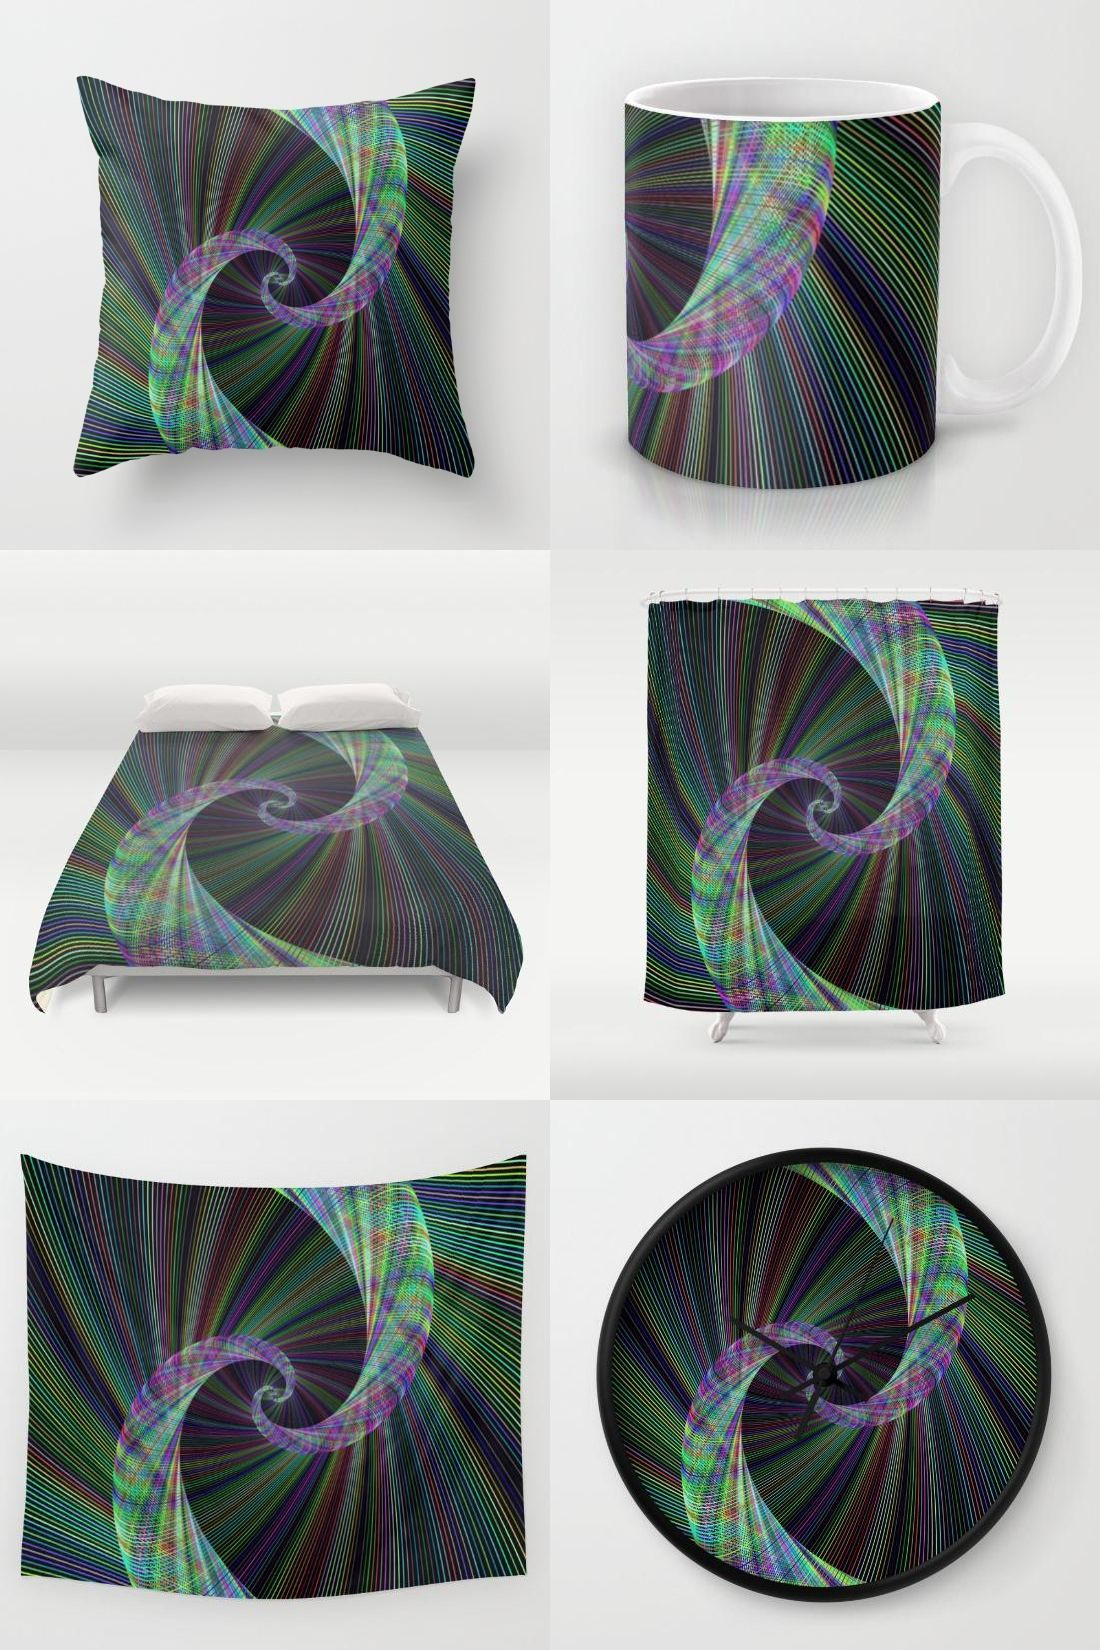 Wormhole home decor gifts throw pillow